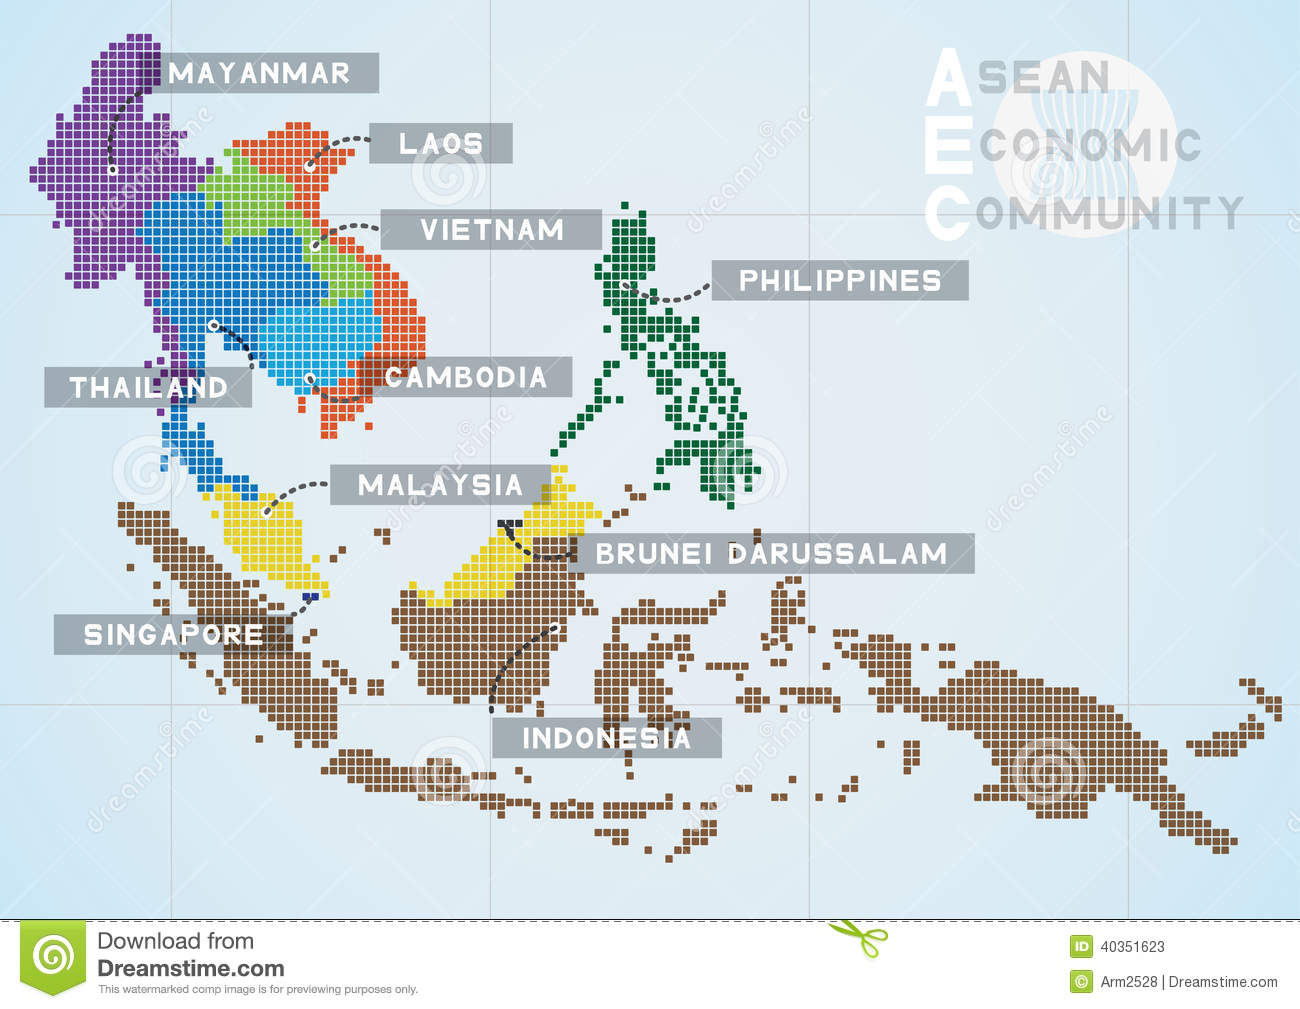 Benefits of the ASEAN Economic Community – AEC